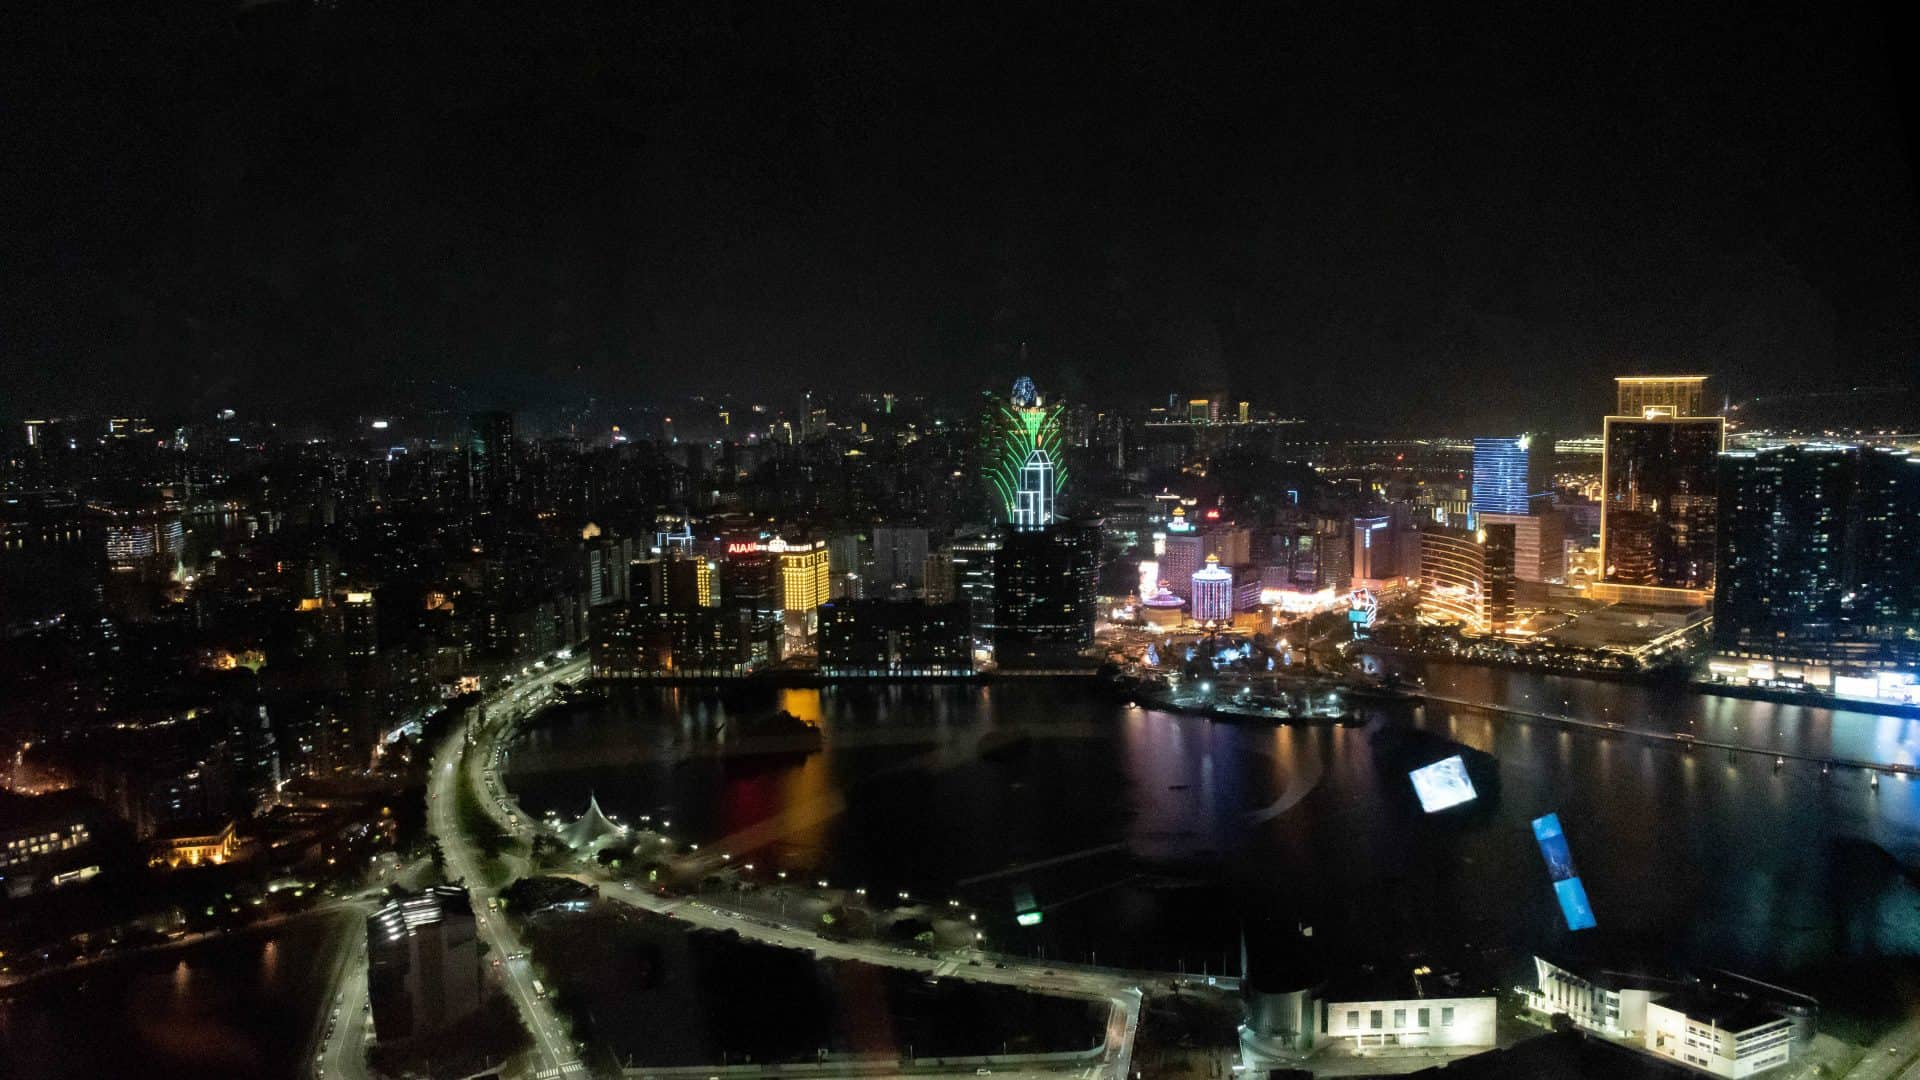 View of Macau Skyline from the Macau Tower